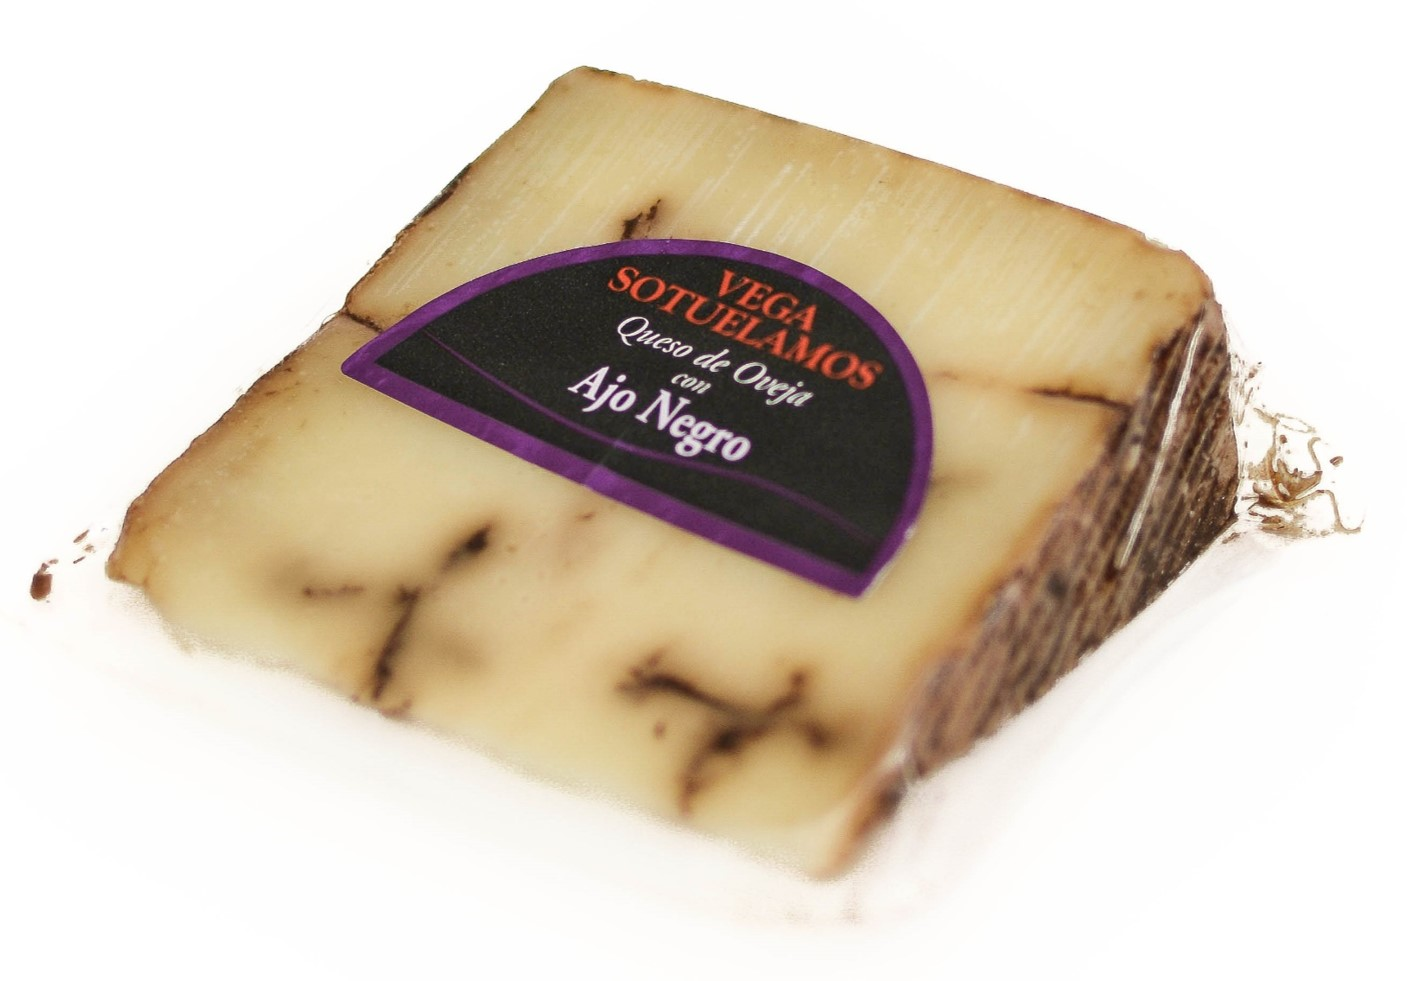 Vega Sotuelamos Queso de Oveja Ajo Negro Sheep Cheese